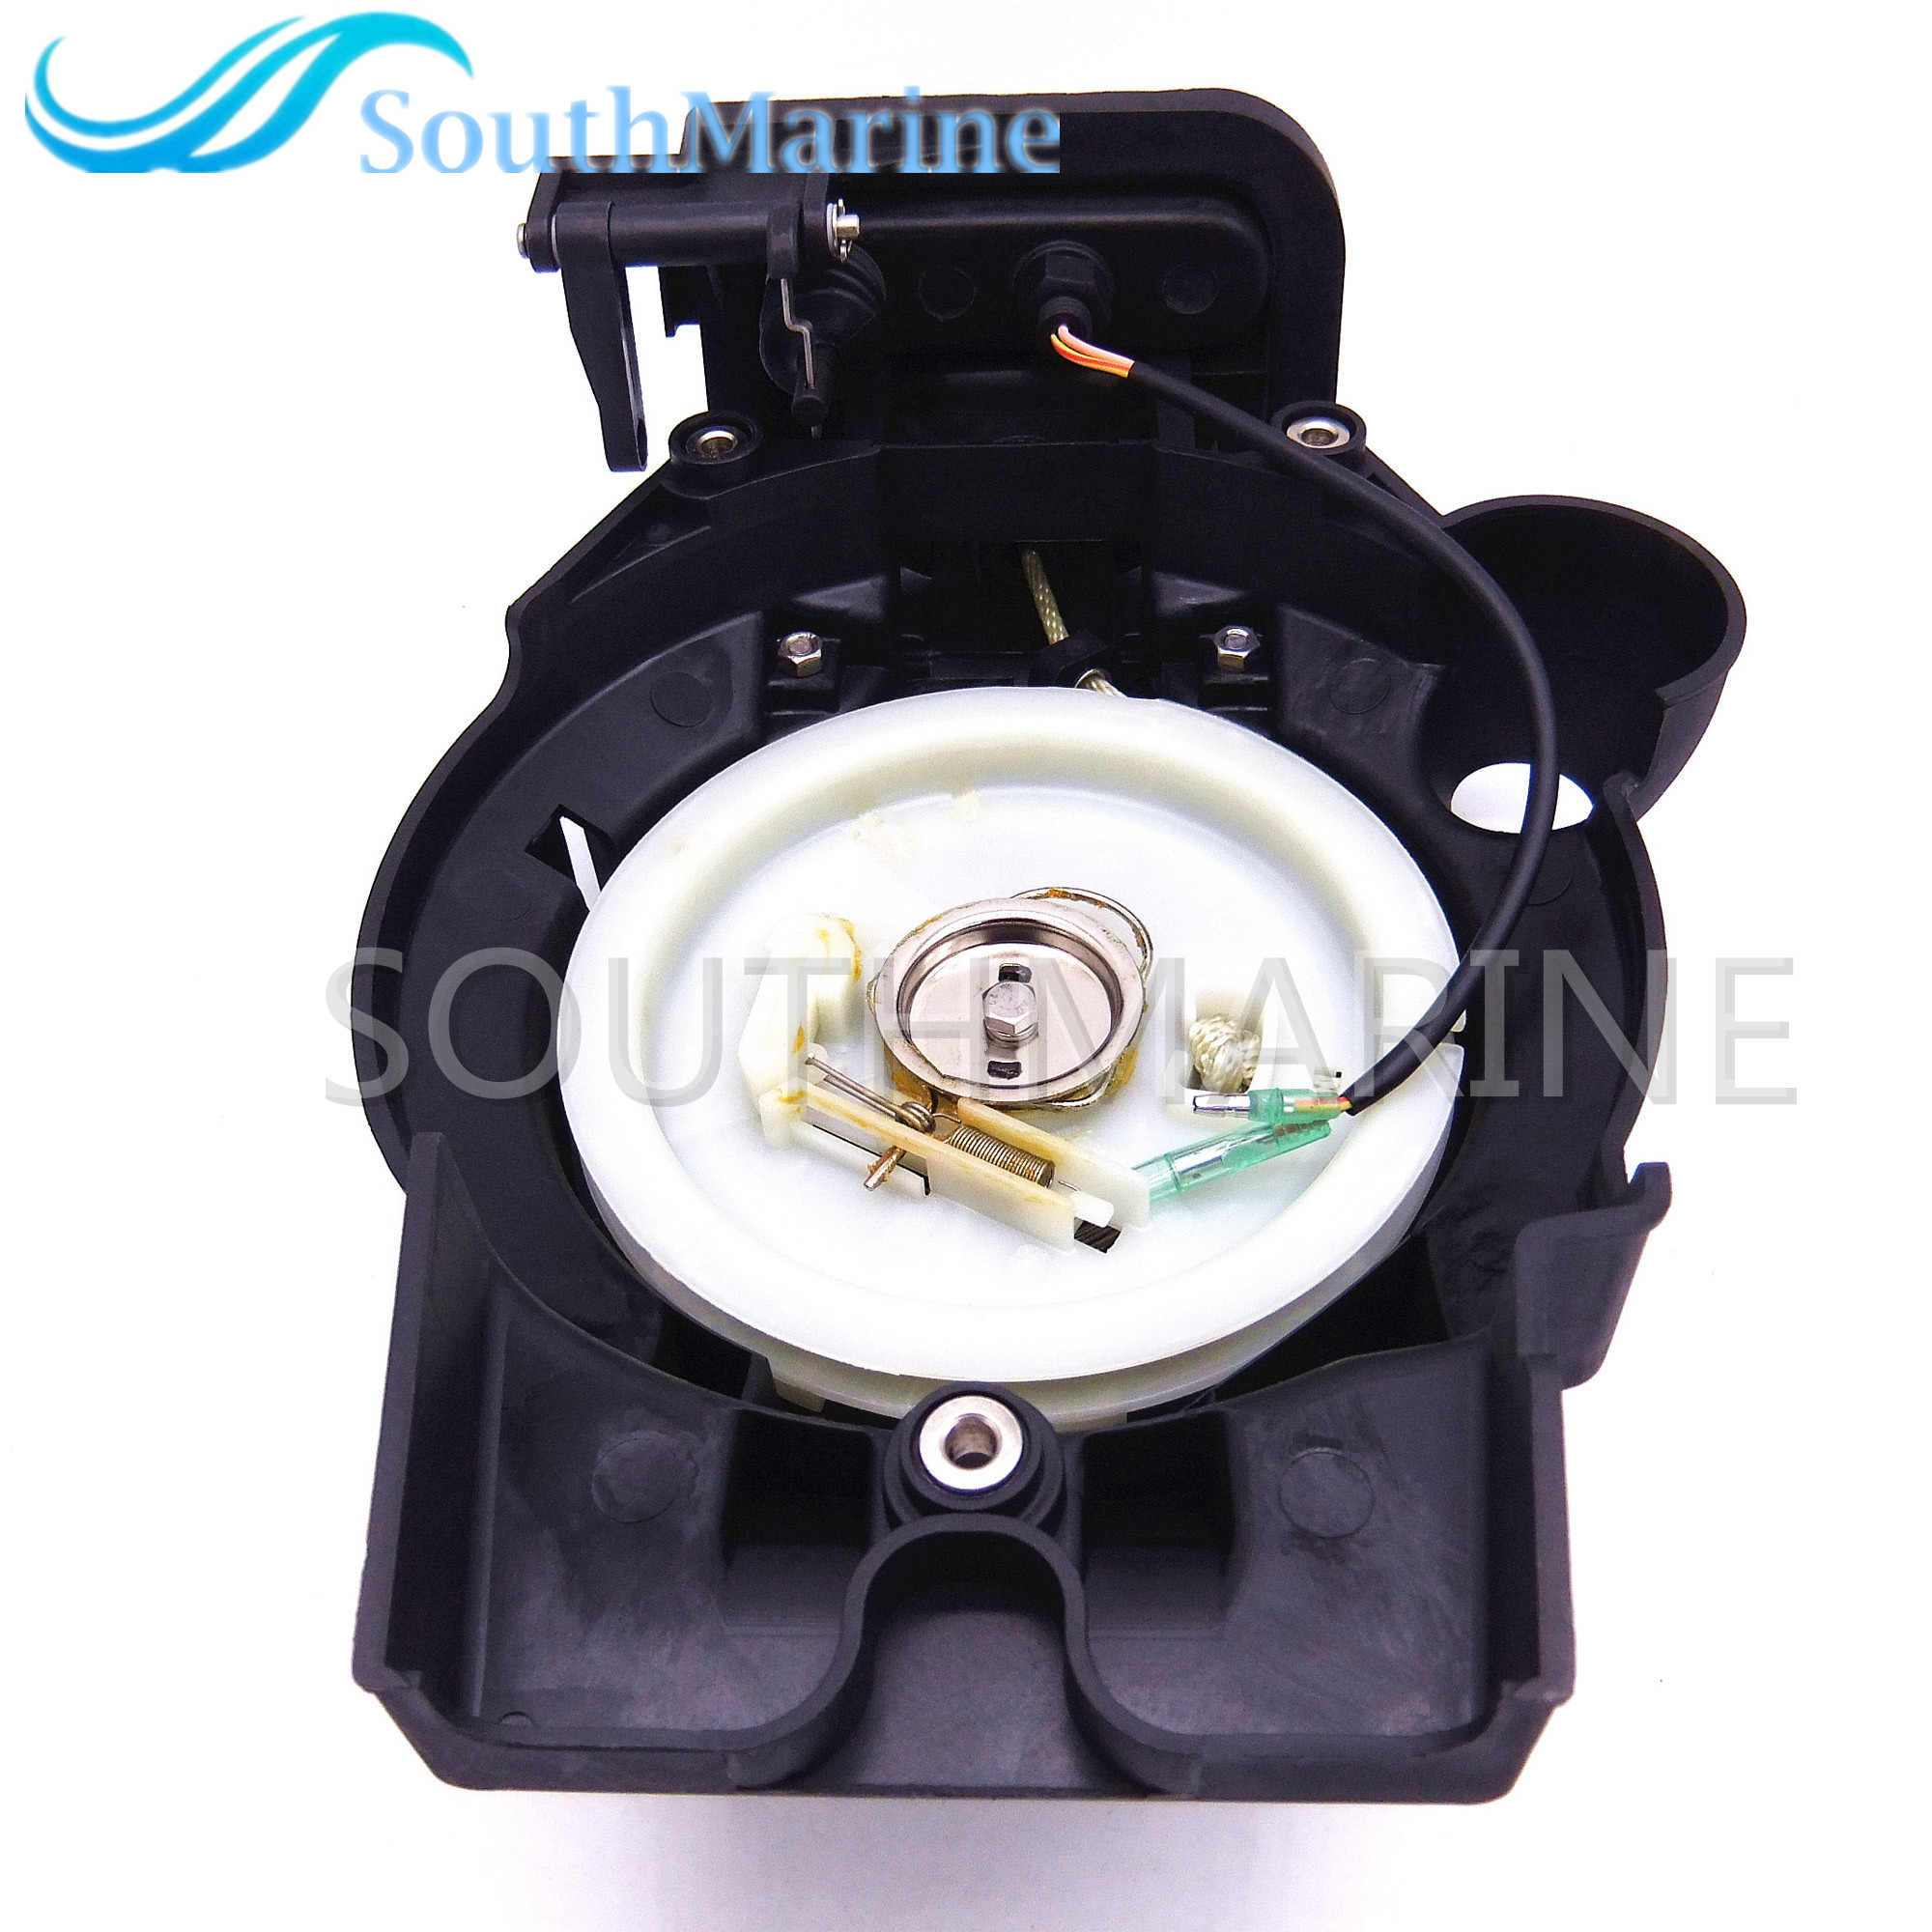 Starter Assy F15-07130000 for Parsun HDX F15 F9.9 4-stroke Outboard Motors ,Free Shipping